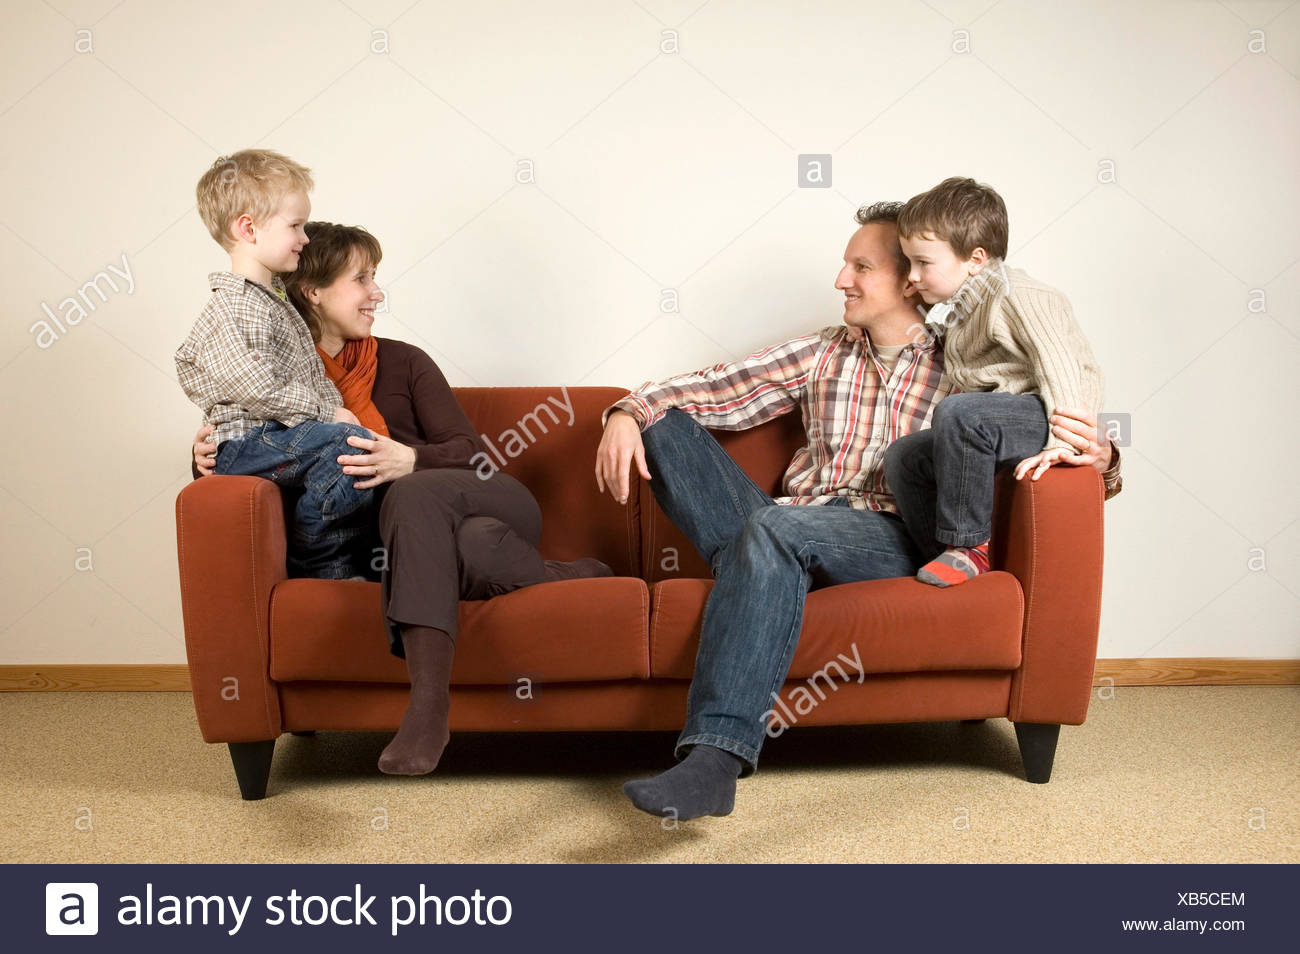 Family On A Couch 1 - Stock Image